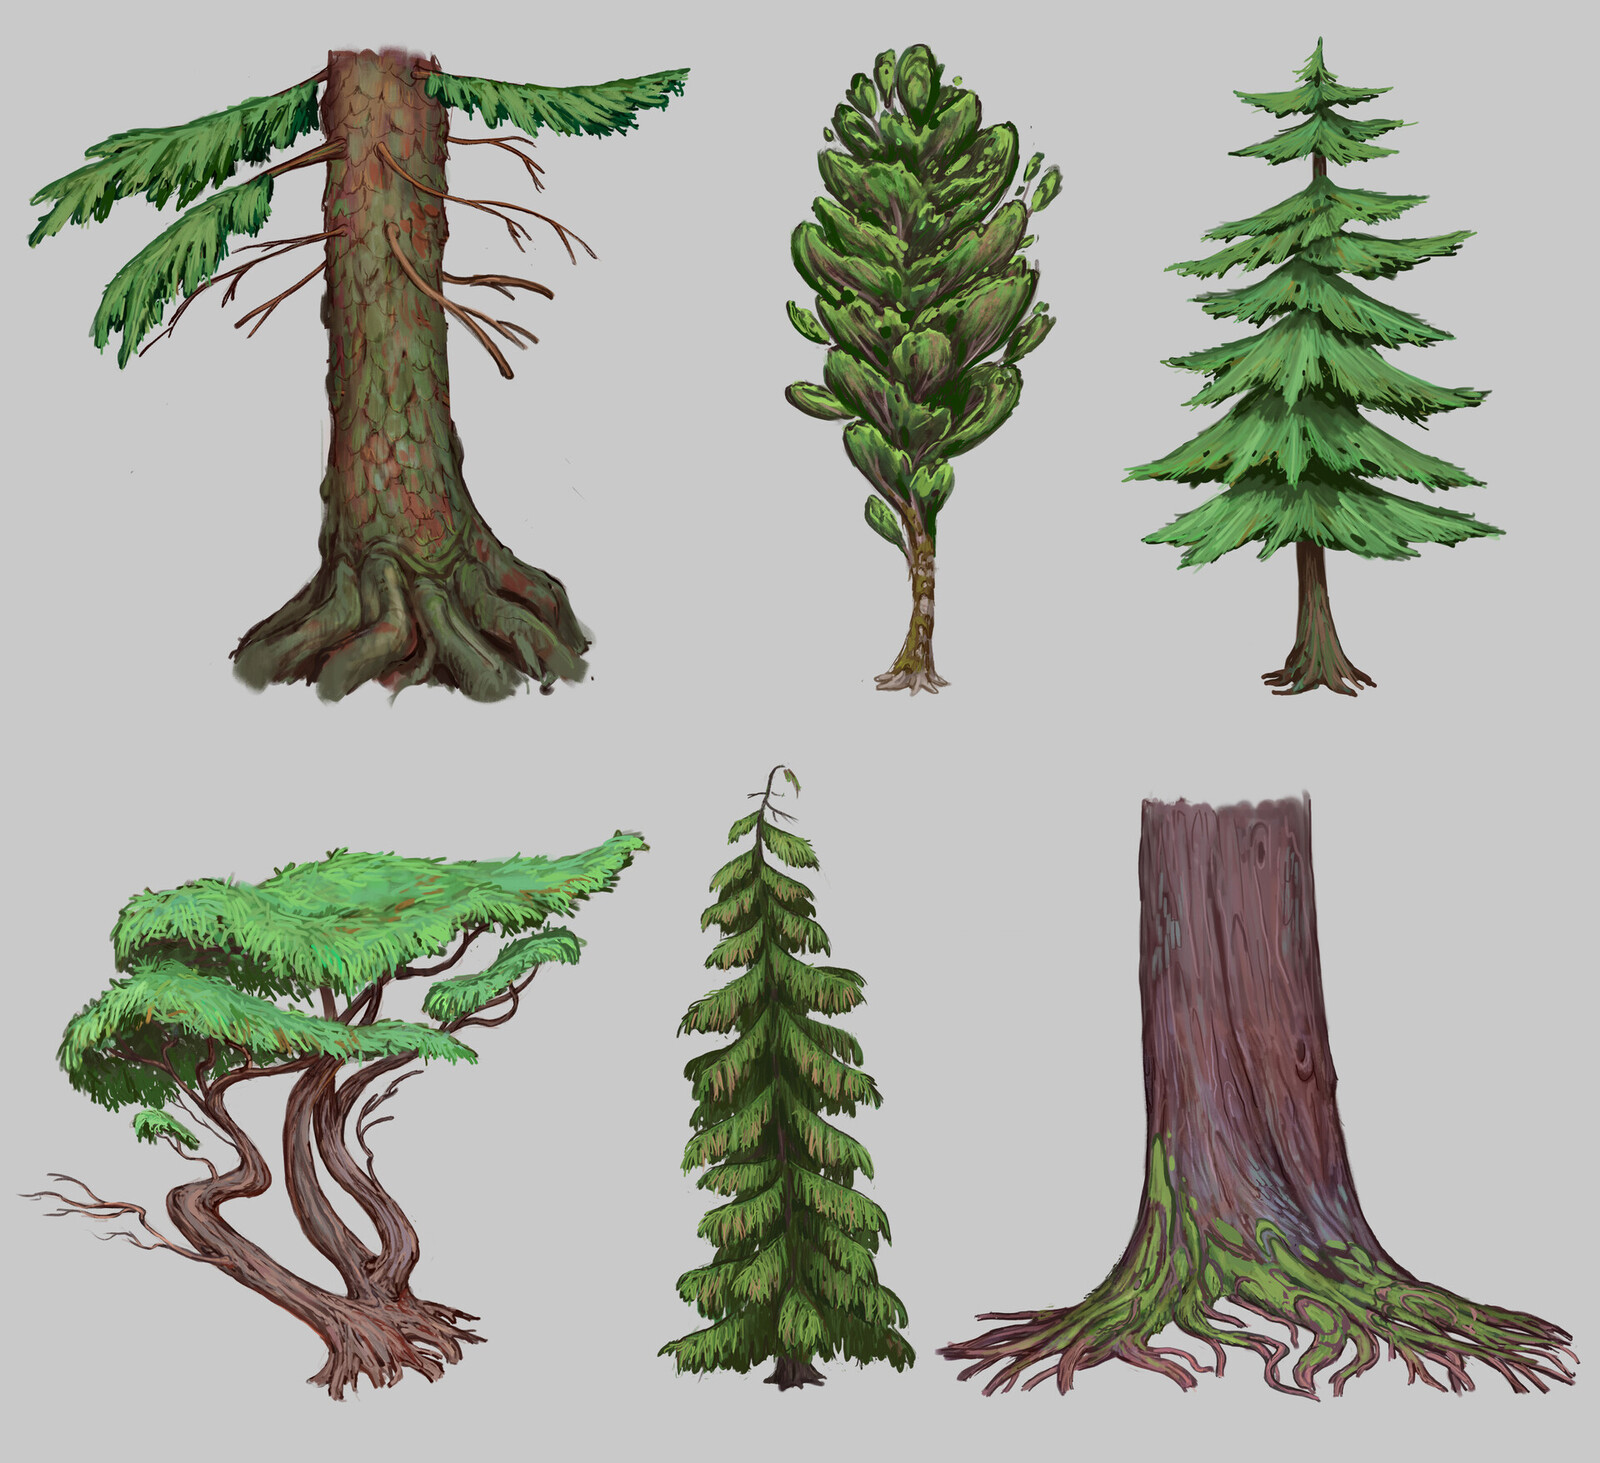 Pinocchio: Tree Designs